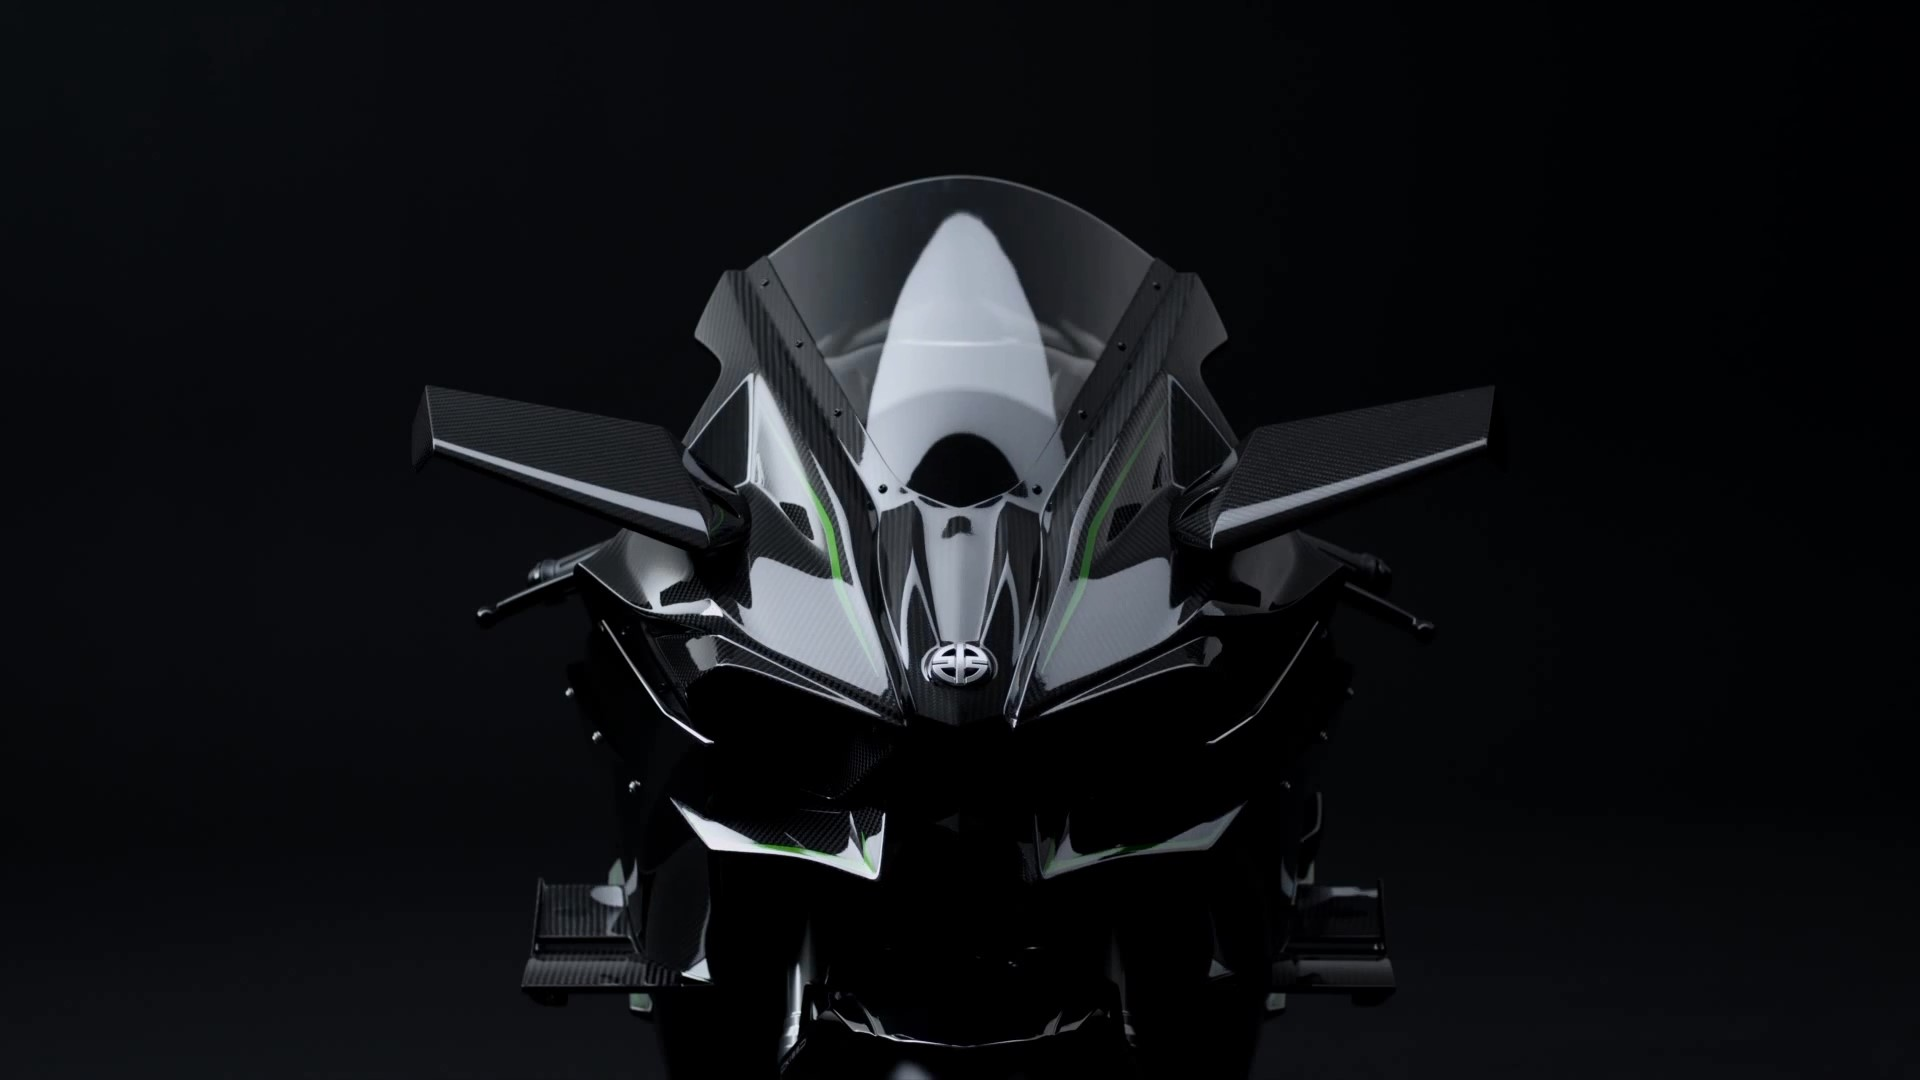 kawasaki-ninja-h2-pics-and-video-show-a-game-changer-photo-galleryvideo_20